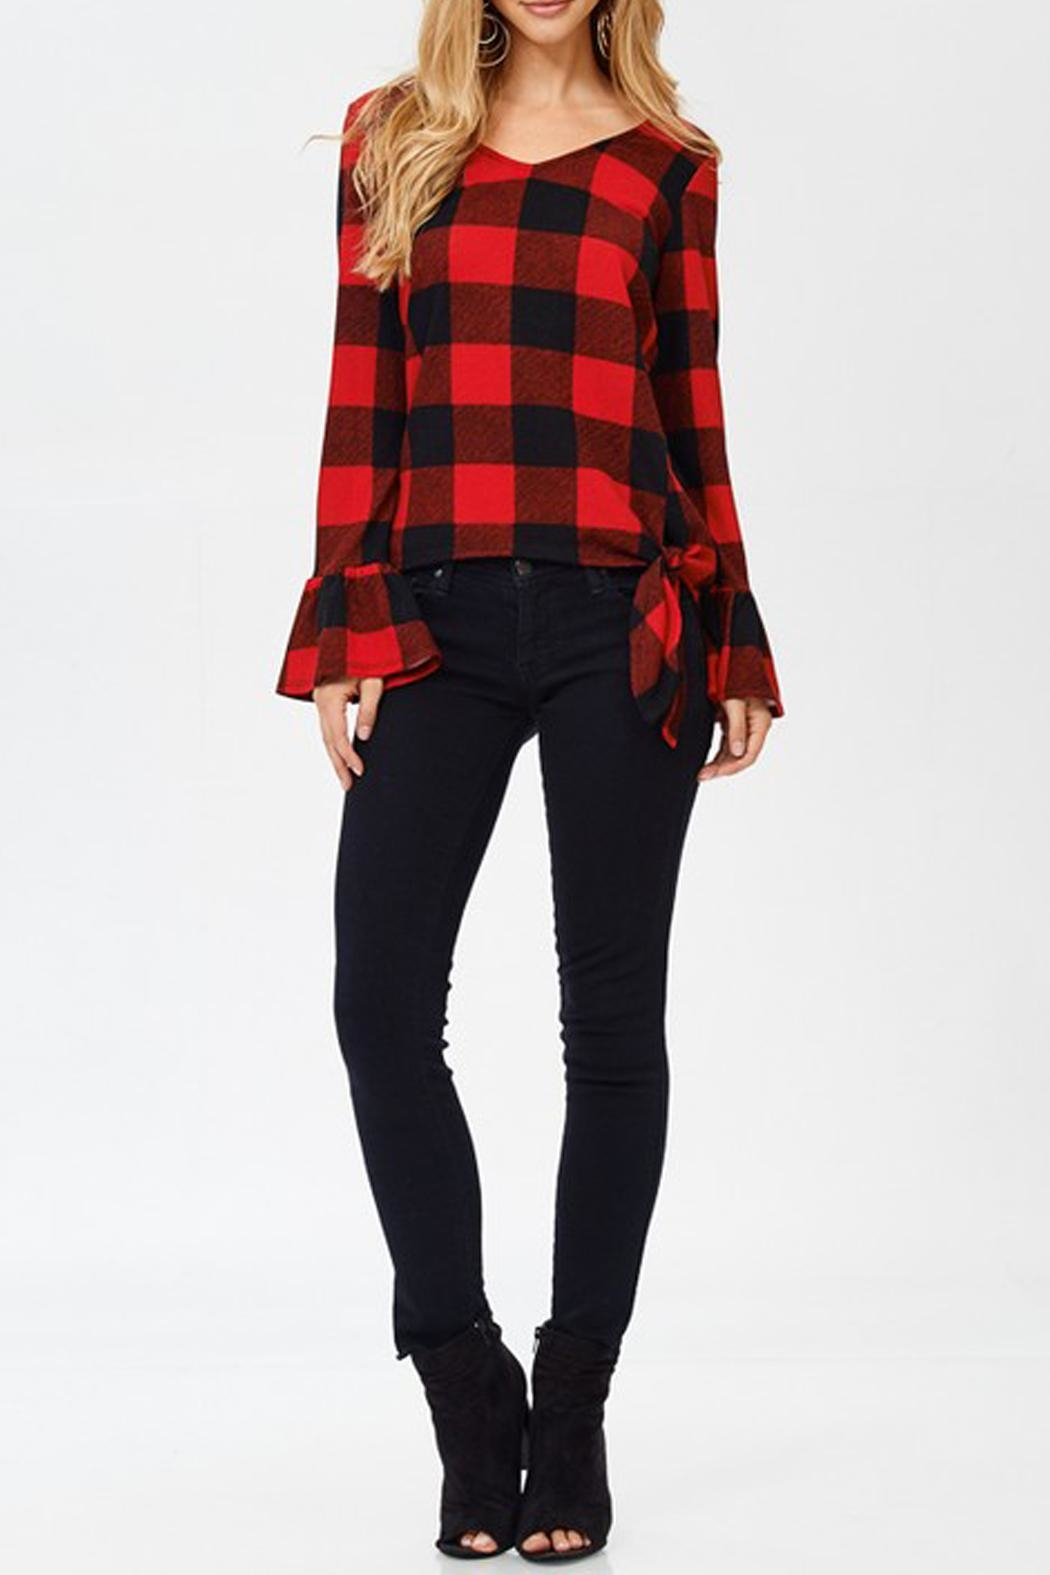 8d0539caa9 White Birch Buffalo Plaid Top from Texas by Pickles and Olive s ...